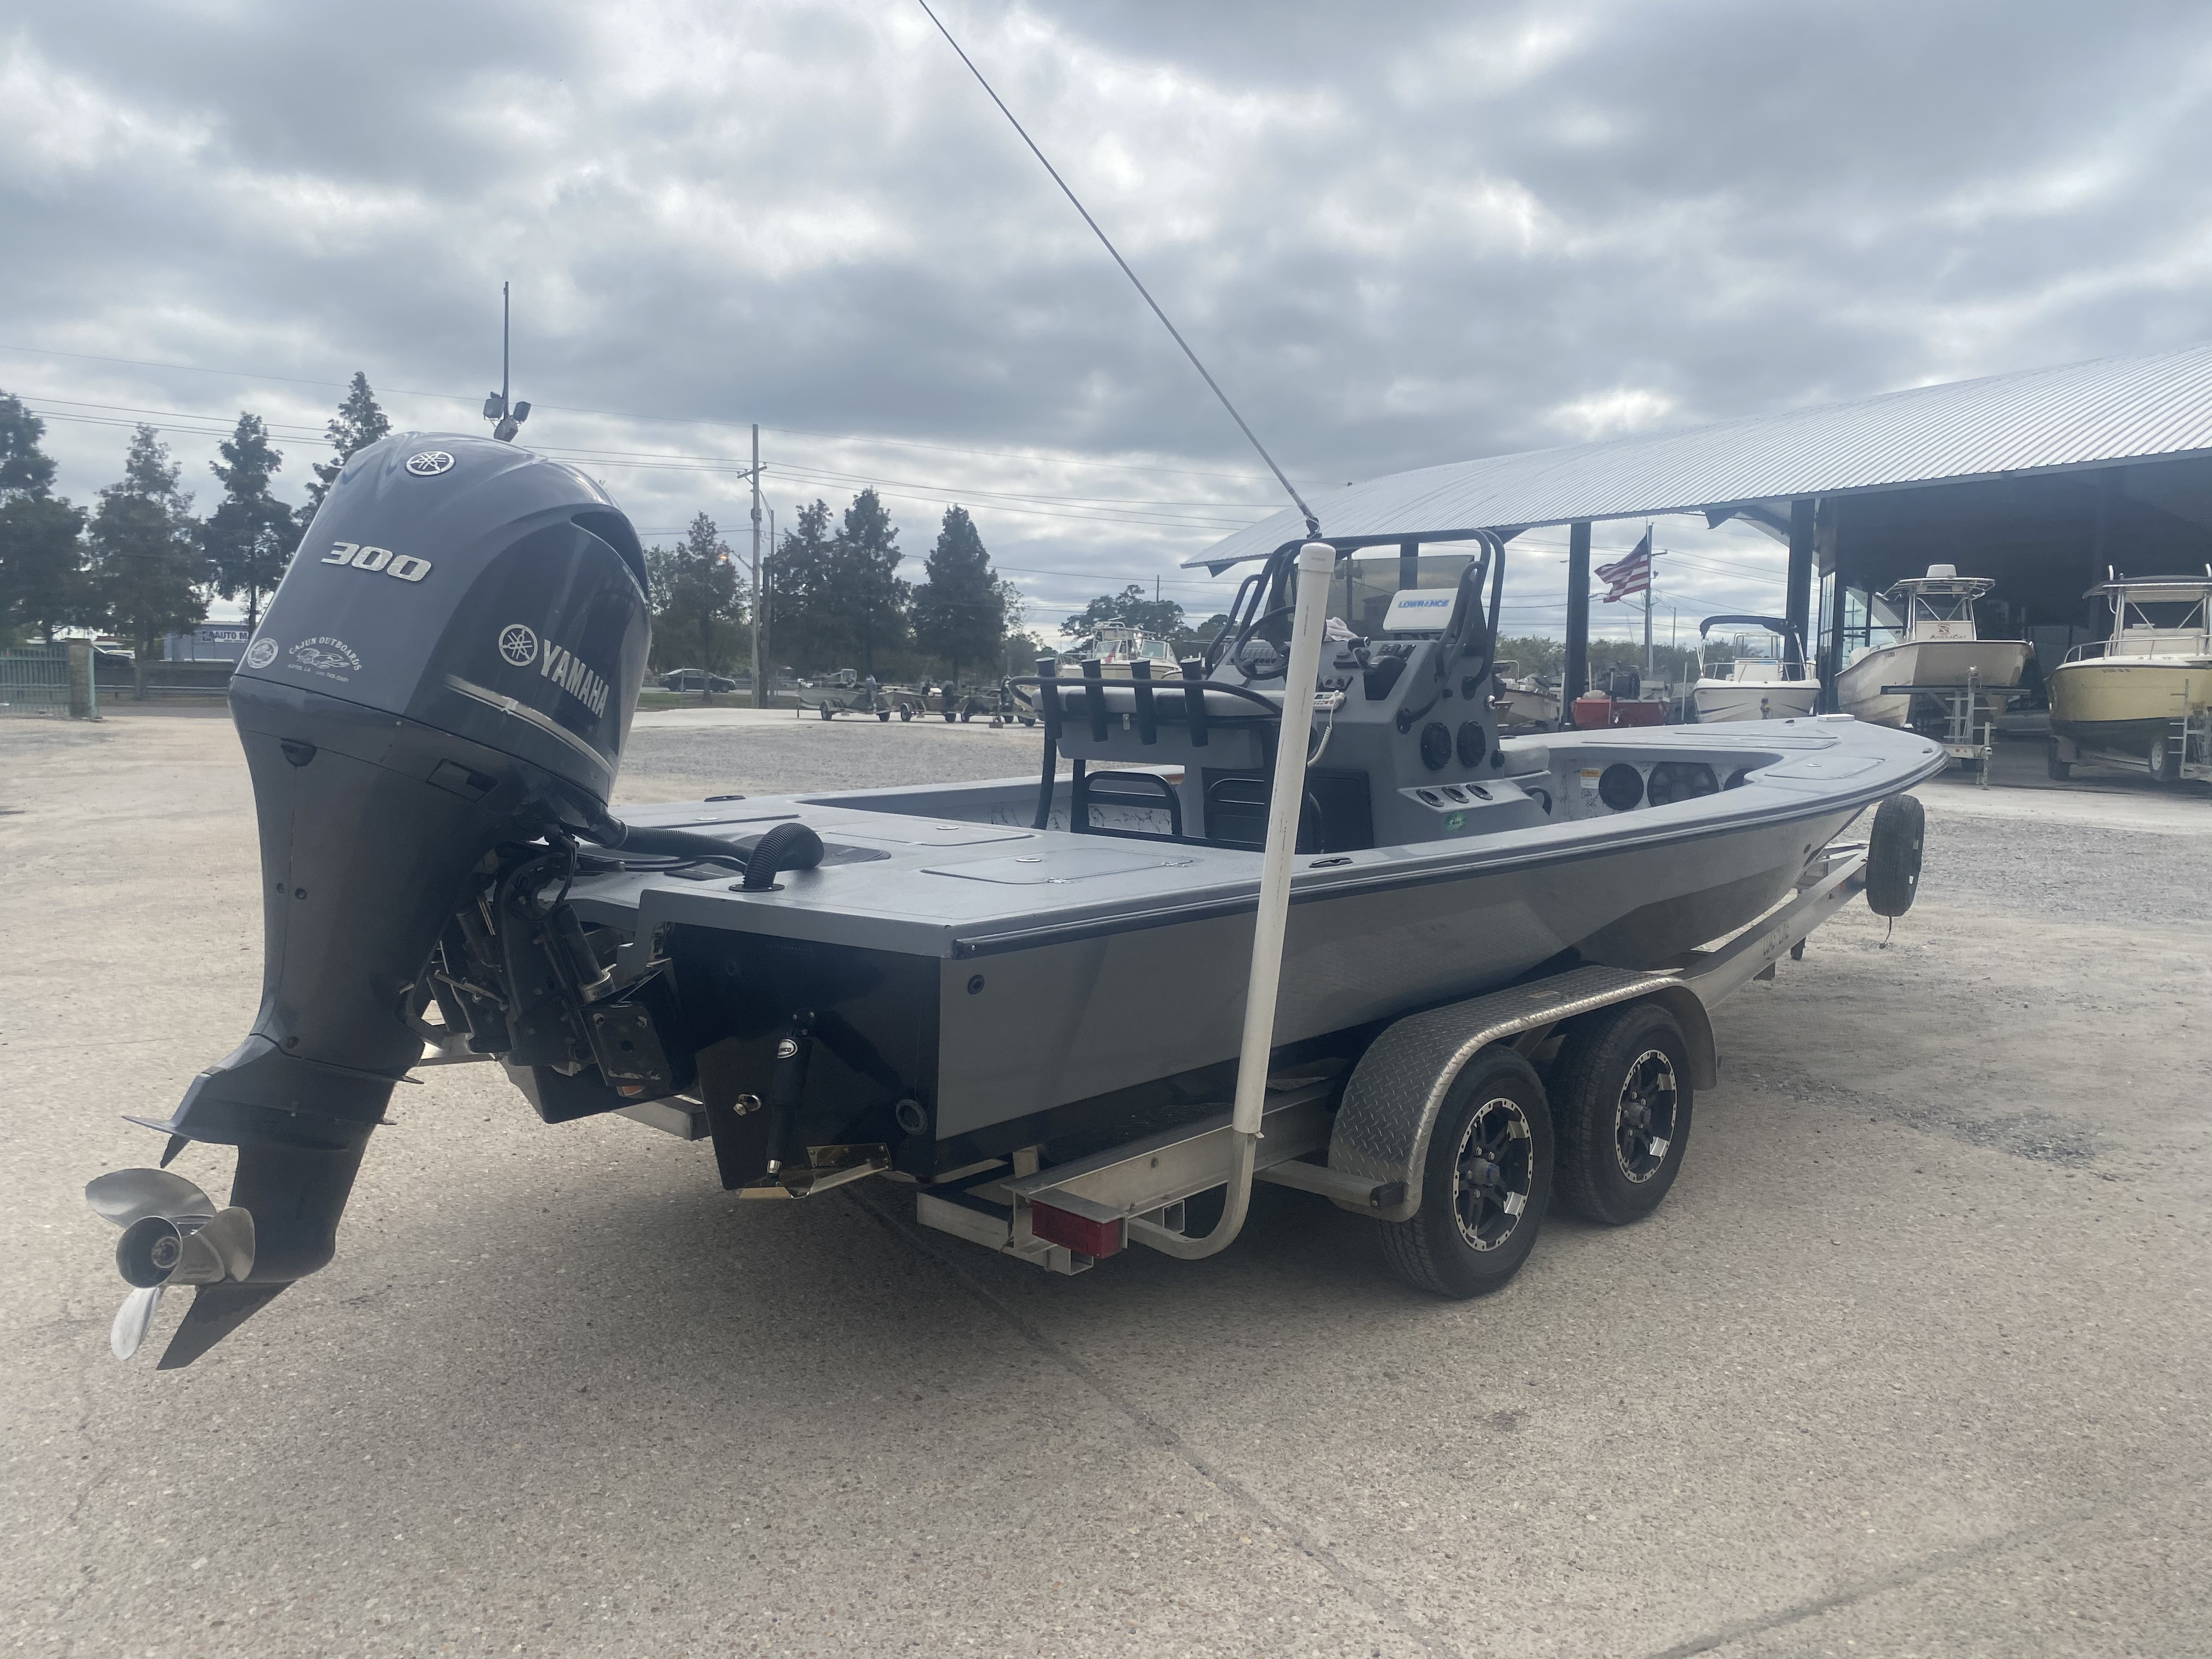 2016 Majek boat for sale, model of the boat is 25 Xtreme & Image # 9 of 16